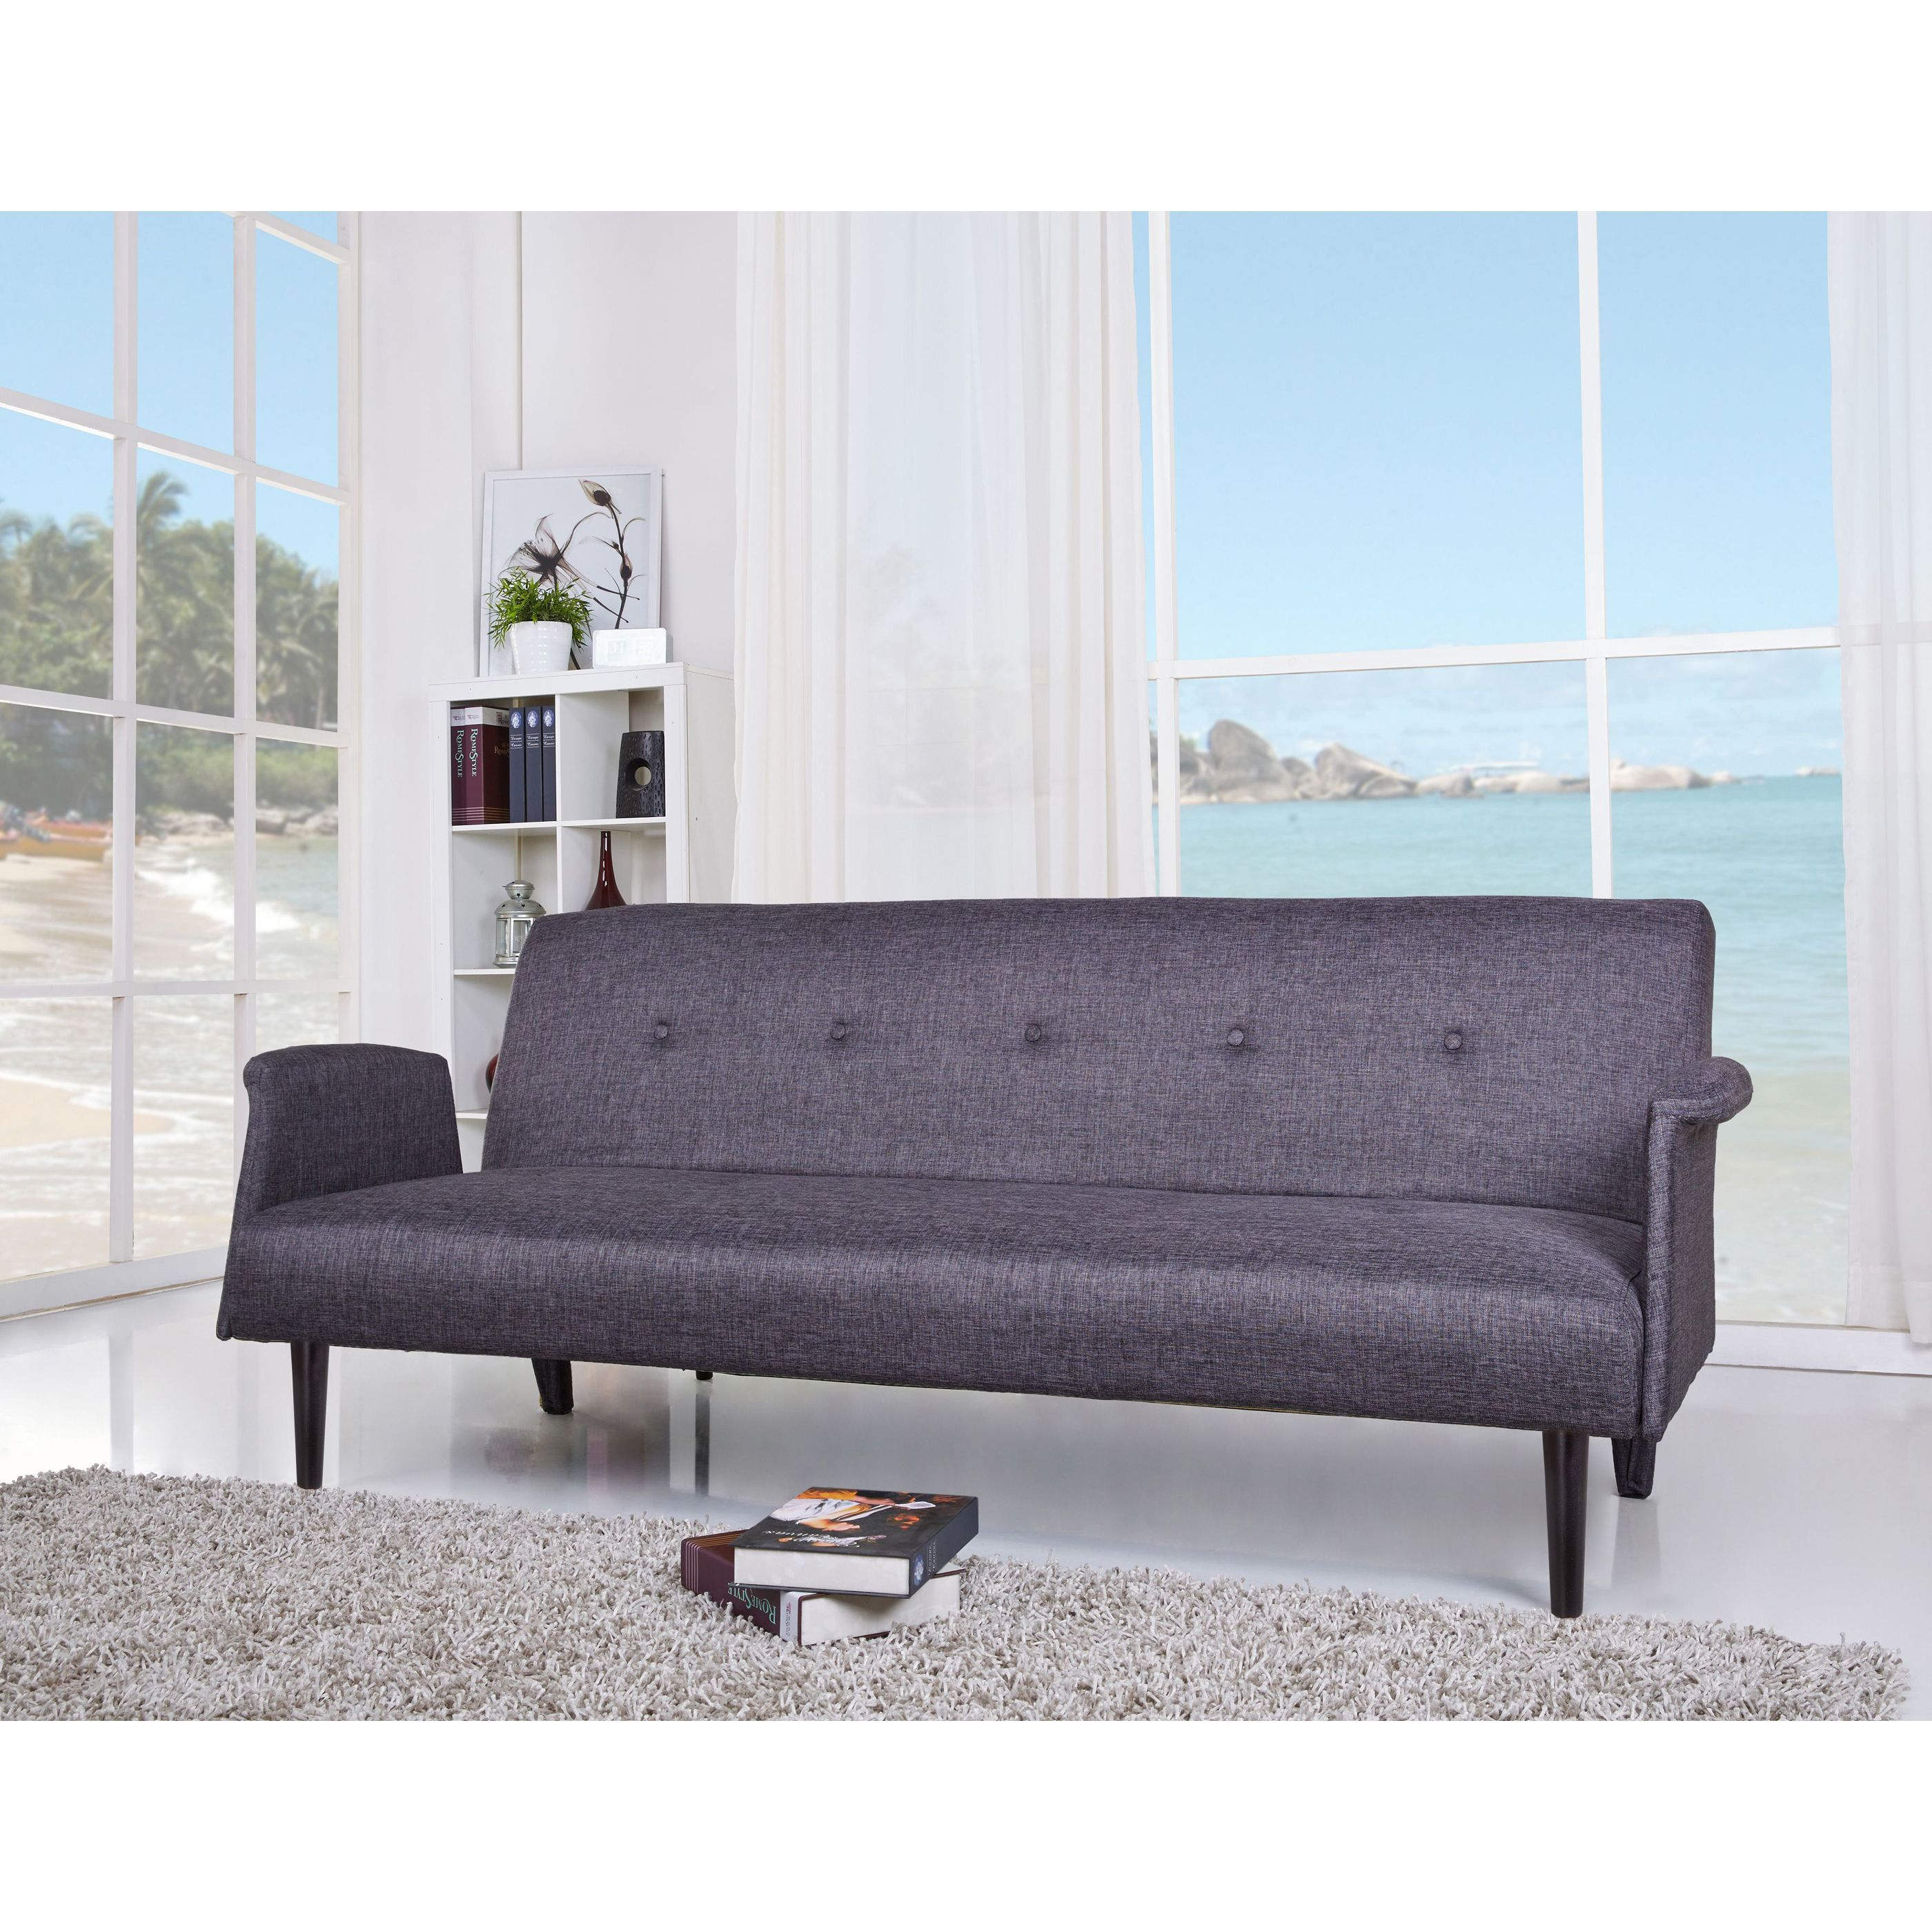 get a modern look that adds comfort and style to your home with the westminster convertible sofa bed european style with a sleek design will inspire a